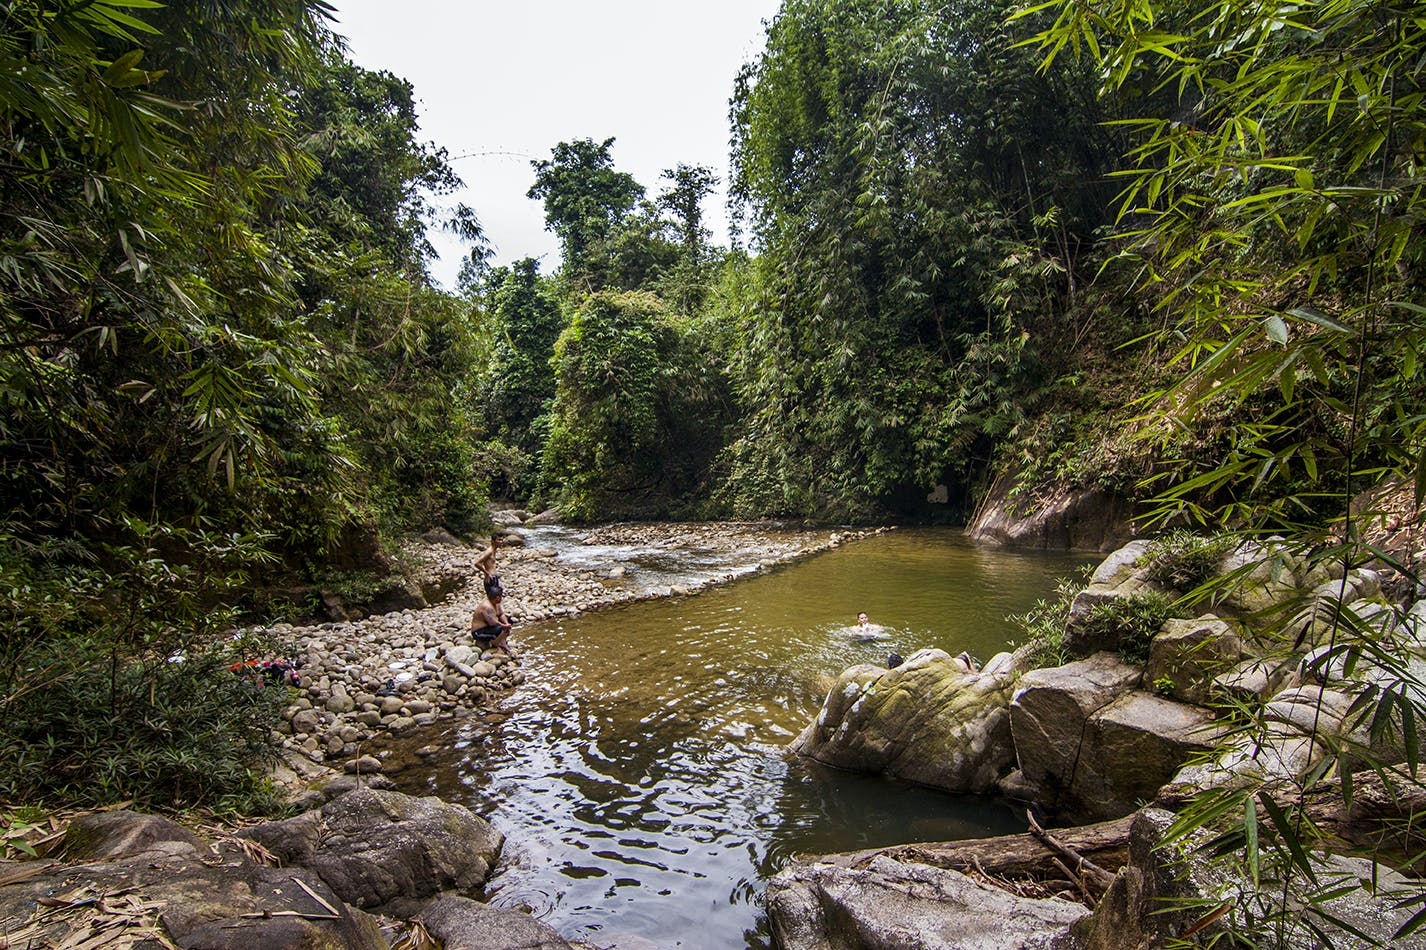 Enjoy the nature with the rainforest ambience at Gepai Falls nearby TheCedar@Bidor